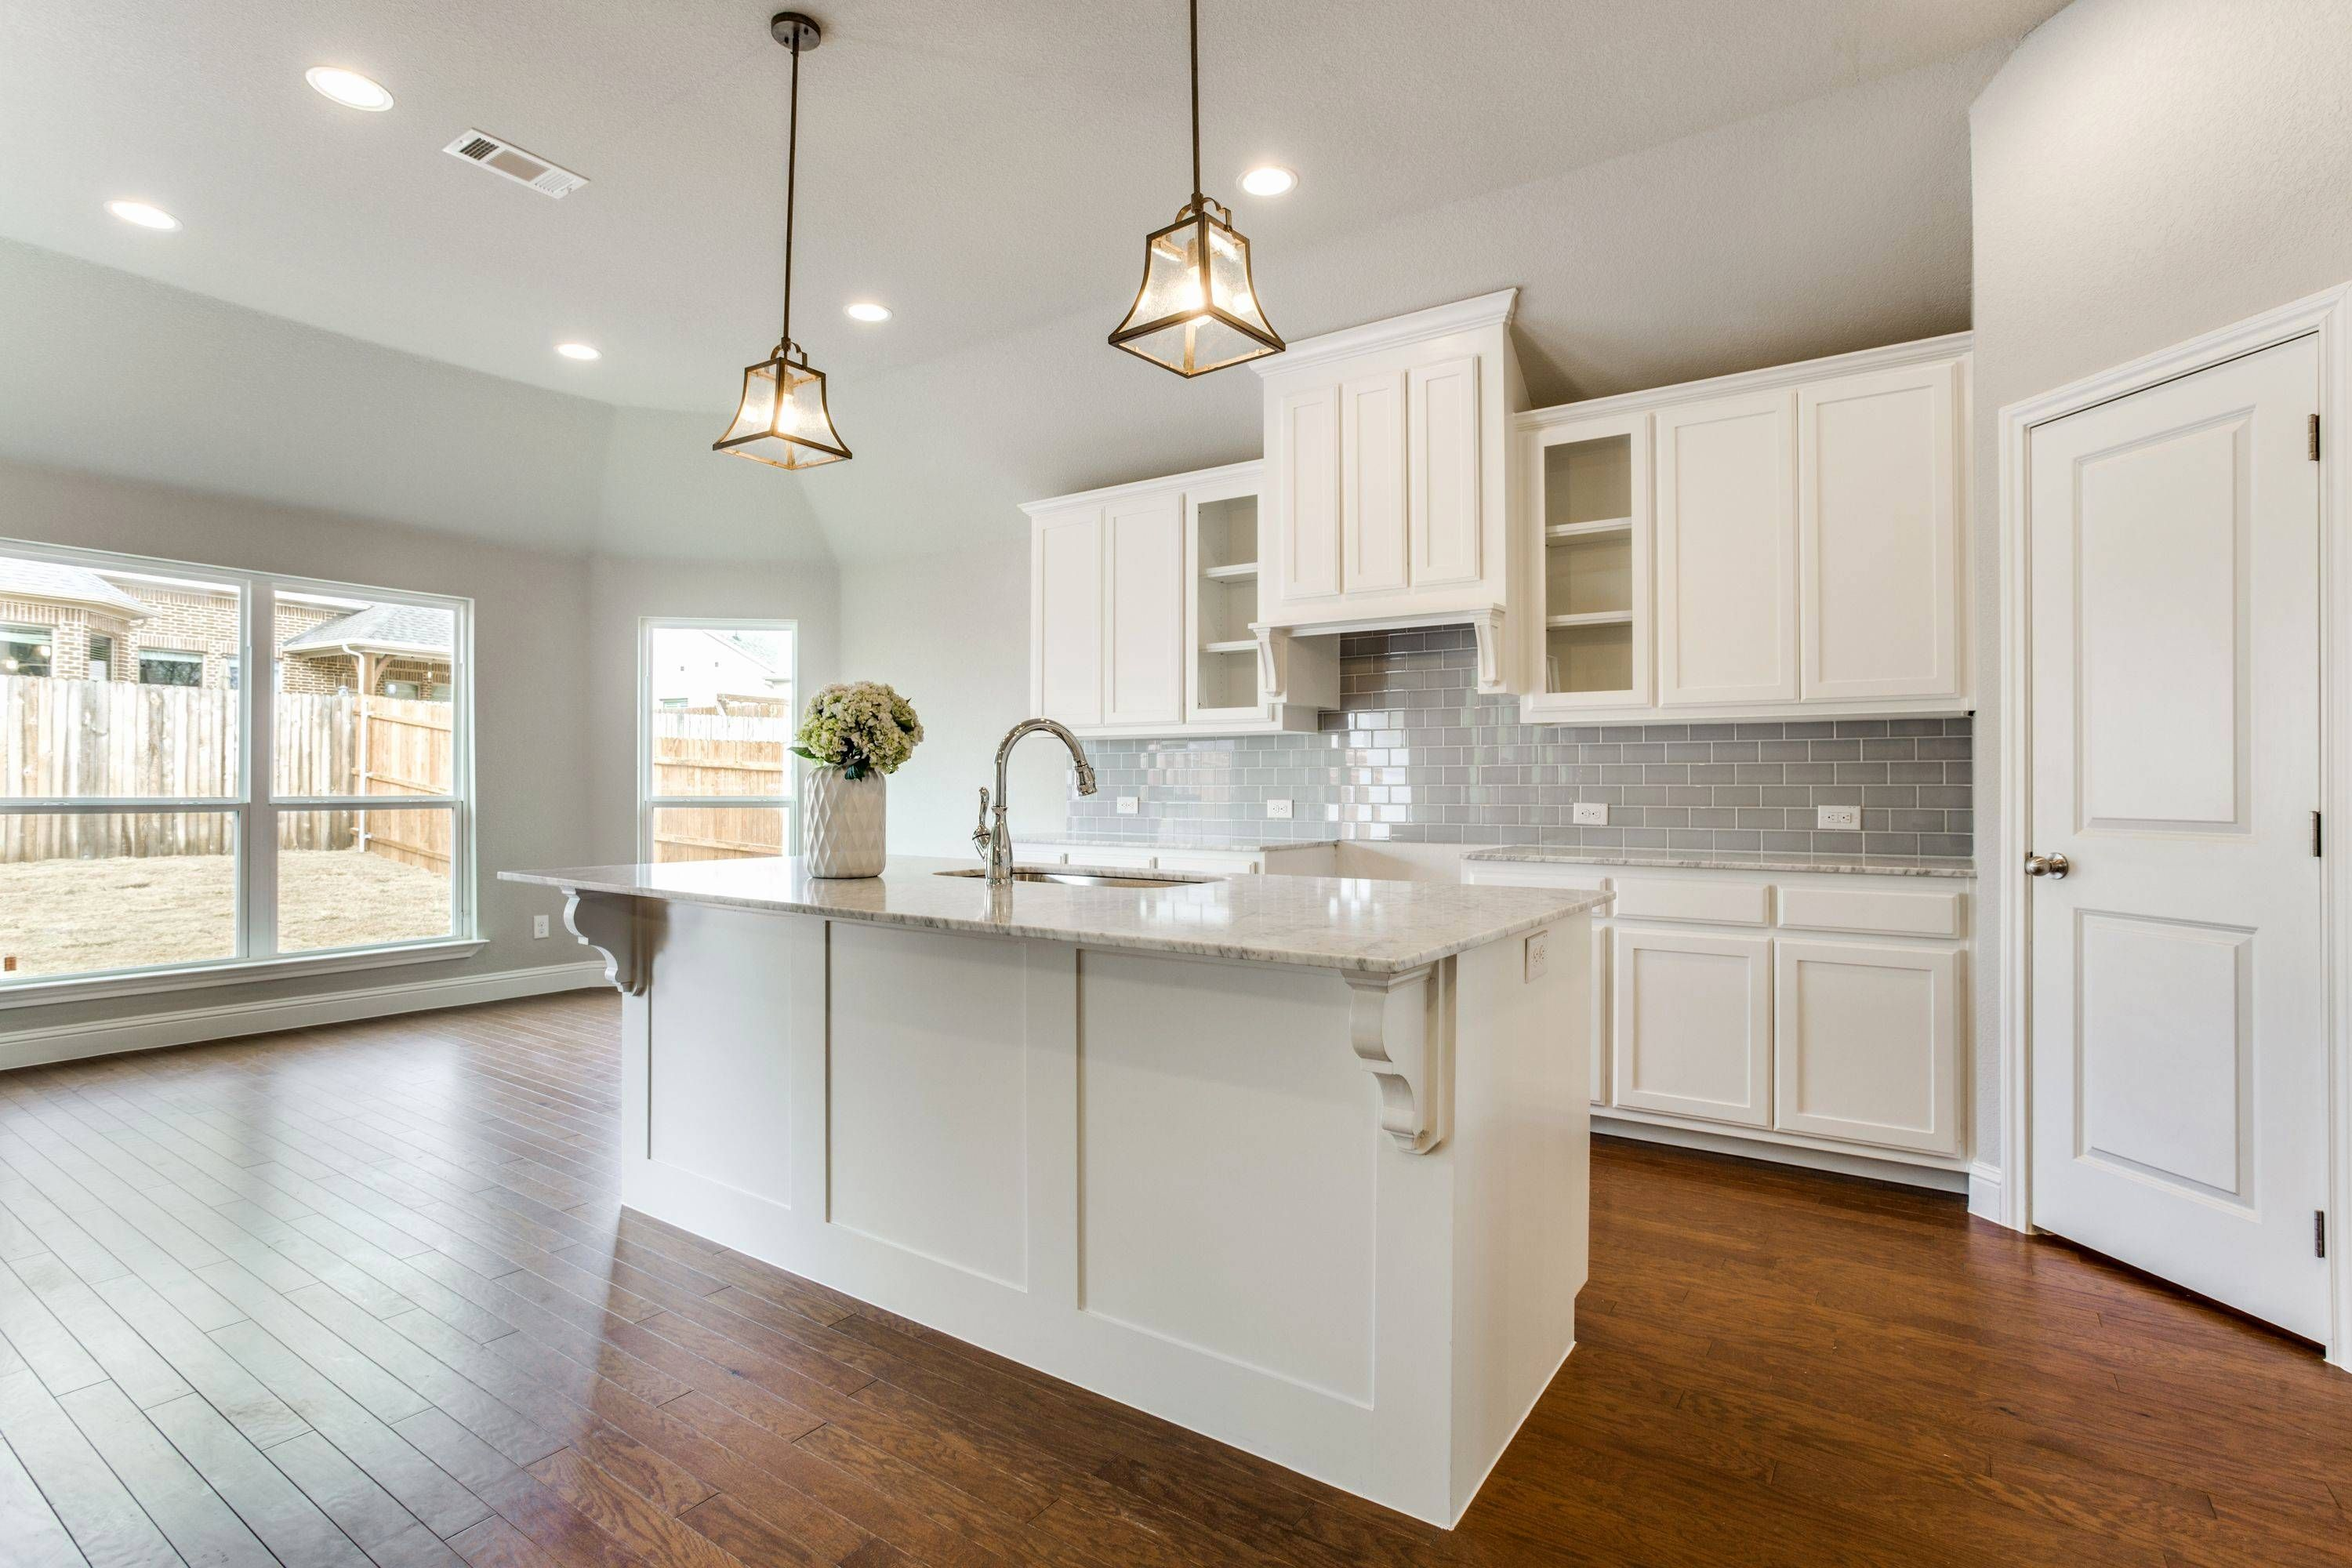 Image Result For Sherwin Williams Eider White Home Kitchens Home Eider White Sherwin Williams